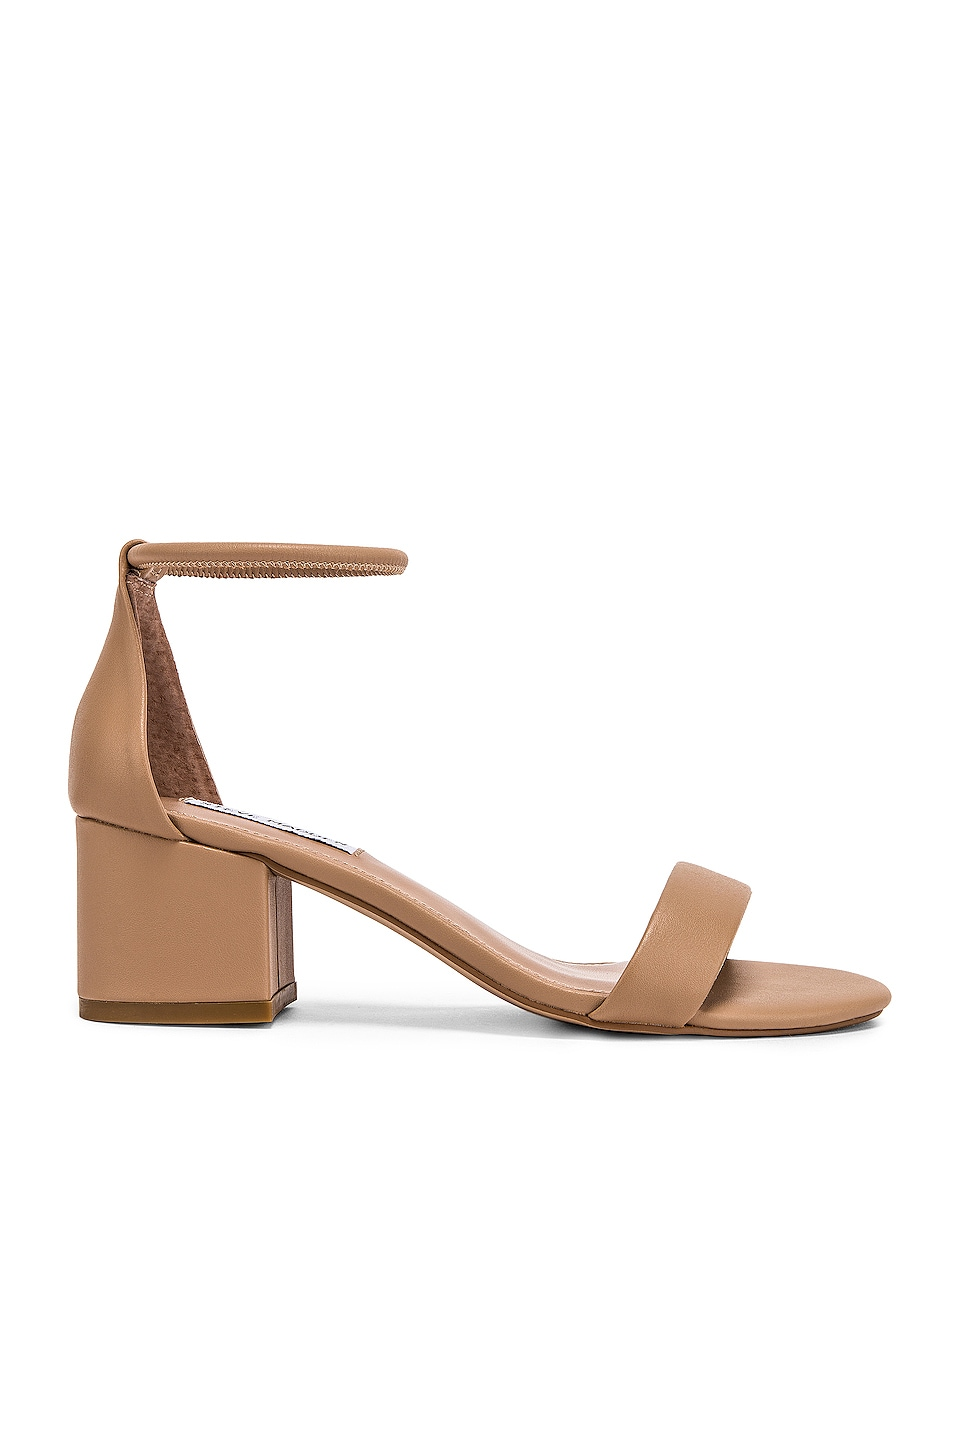 Steve Madden Ibbie Sandal in Natural